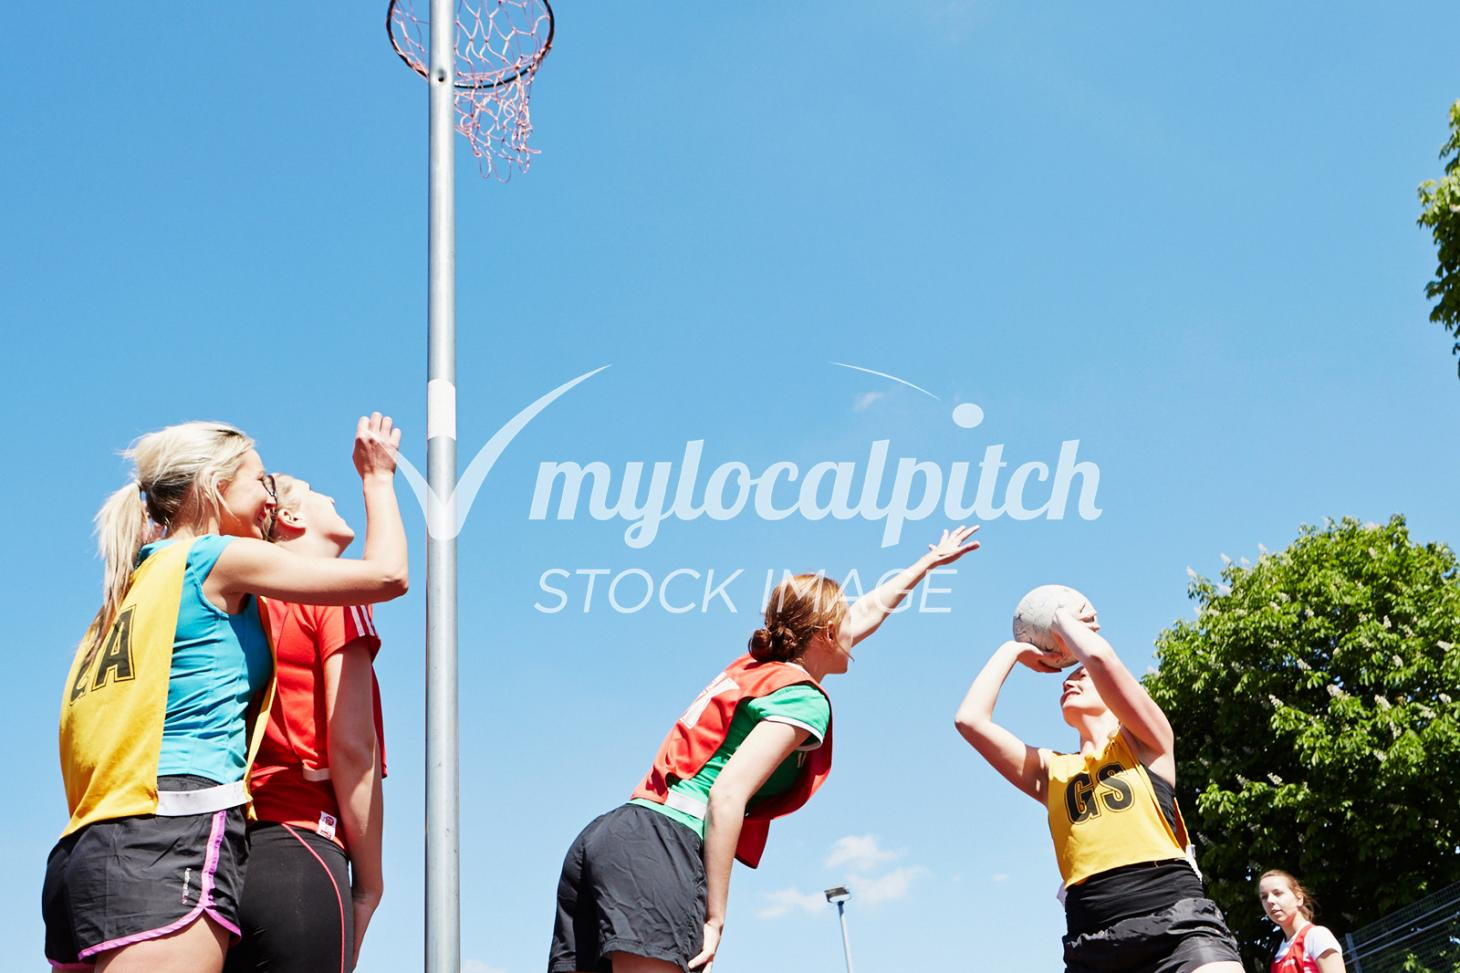 Tolworth Court Ground Outdoor | Concrete netball court